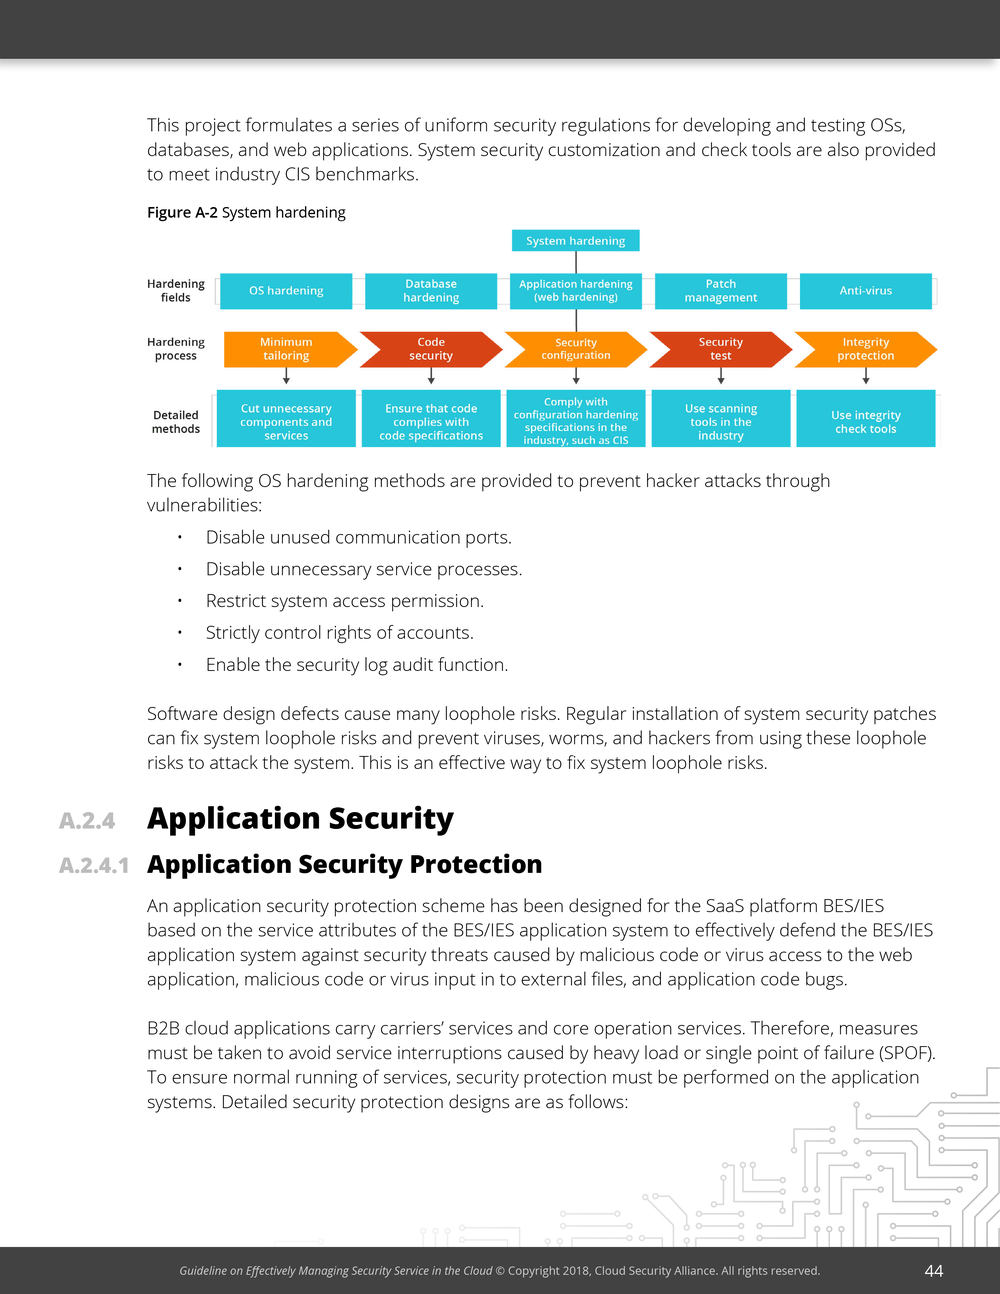 Guideline on Effectively Managing Security Service in the Cloud 10.2.18-45.png